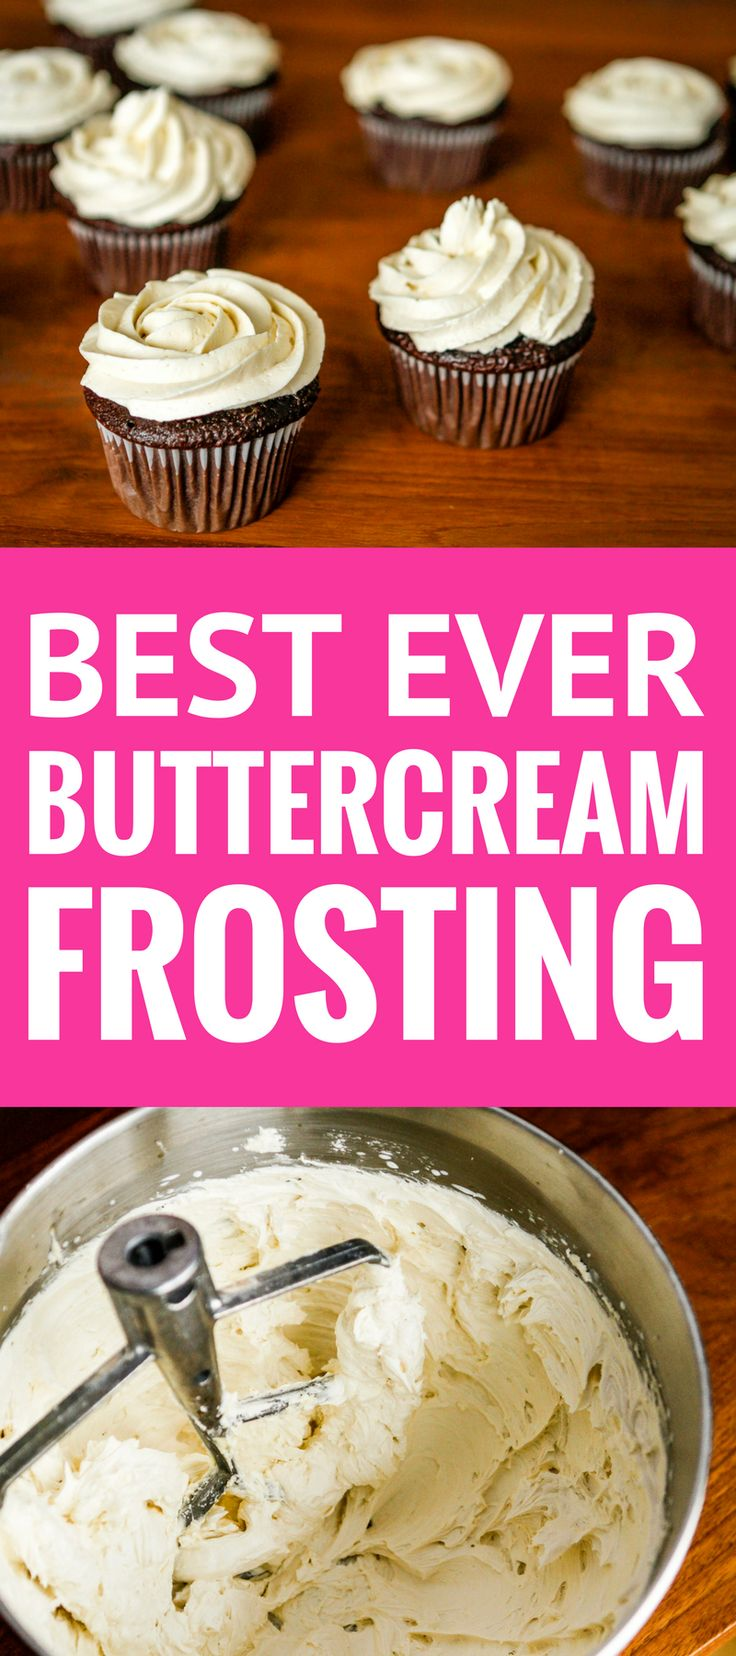 Best Buttercream Frosting Recipe -- super creamy and fluffy, not too sweet, this is quite possibly the BEST buttercream frosting recipe ever... A must try!   vanilla buttercream frosting   homemade buttercream frosting   whipped cream frosting recipe   powdered sugar icing recipe   fluffy buttercream frosting   find the recipe on unsophisticook.com #buttercream #buttercreamfrosting #bestbuttercream